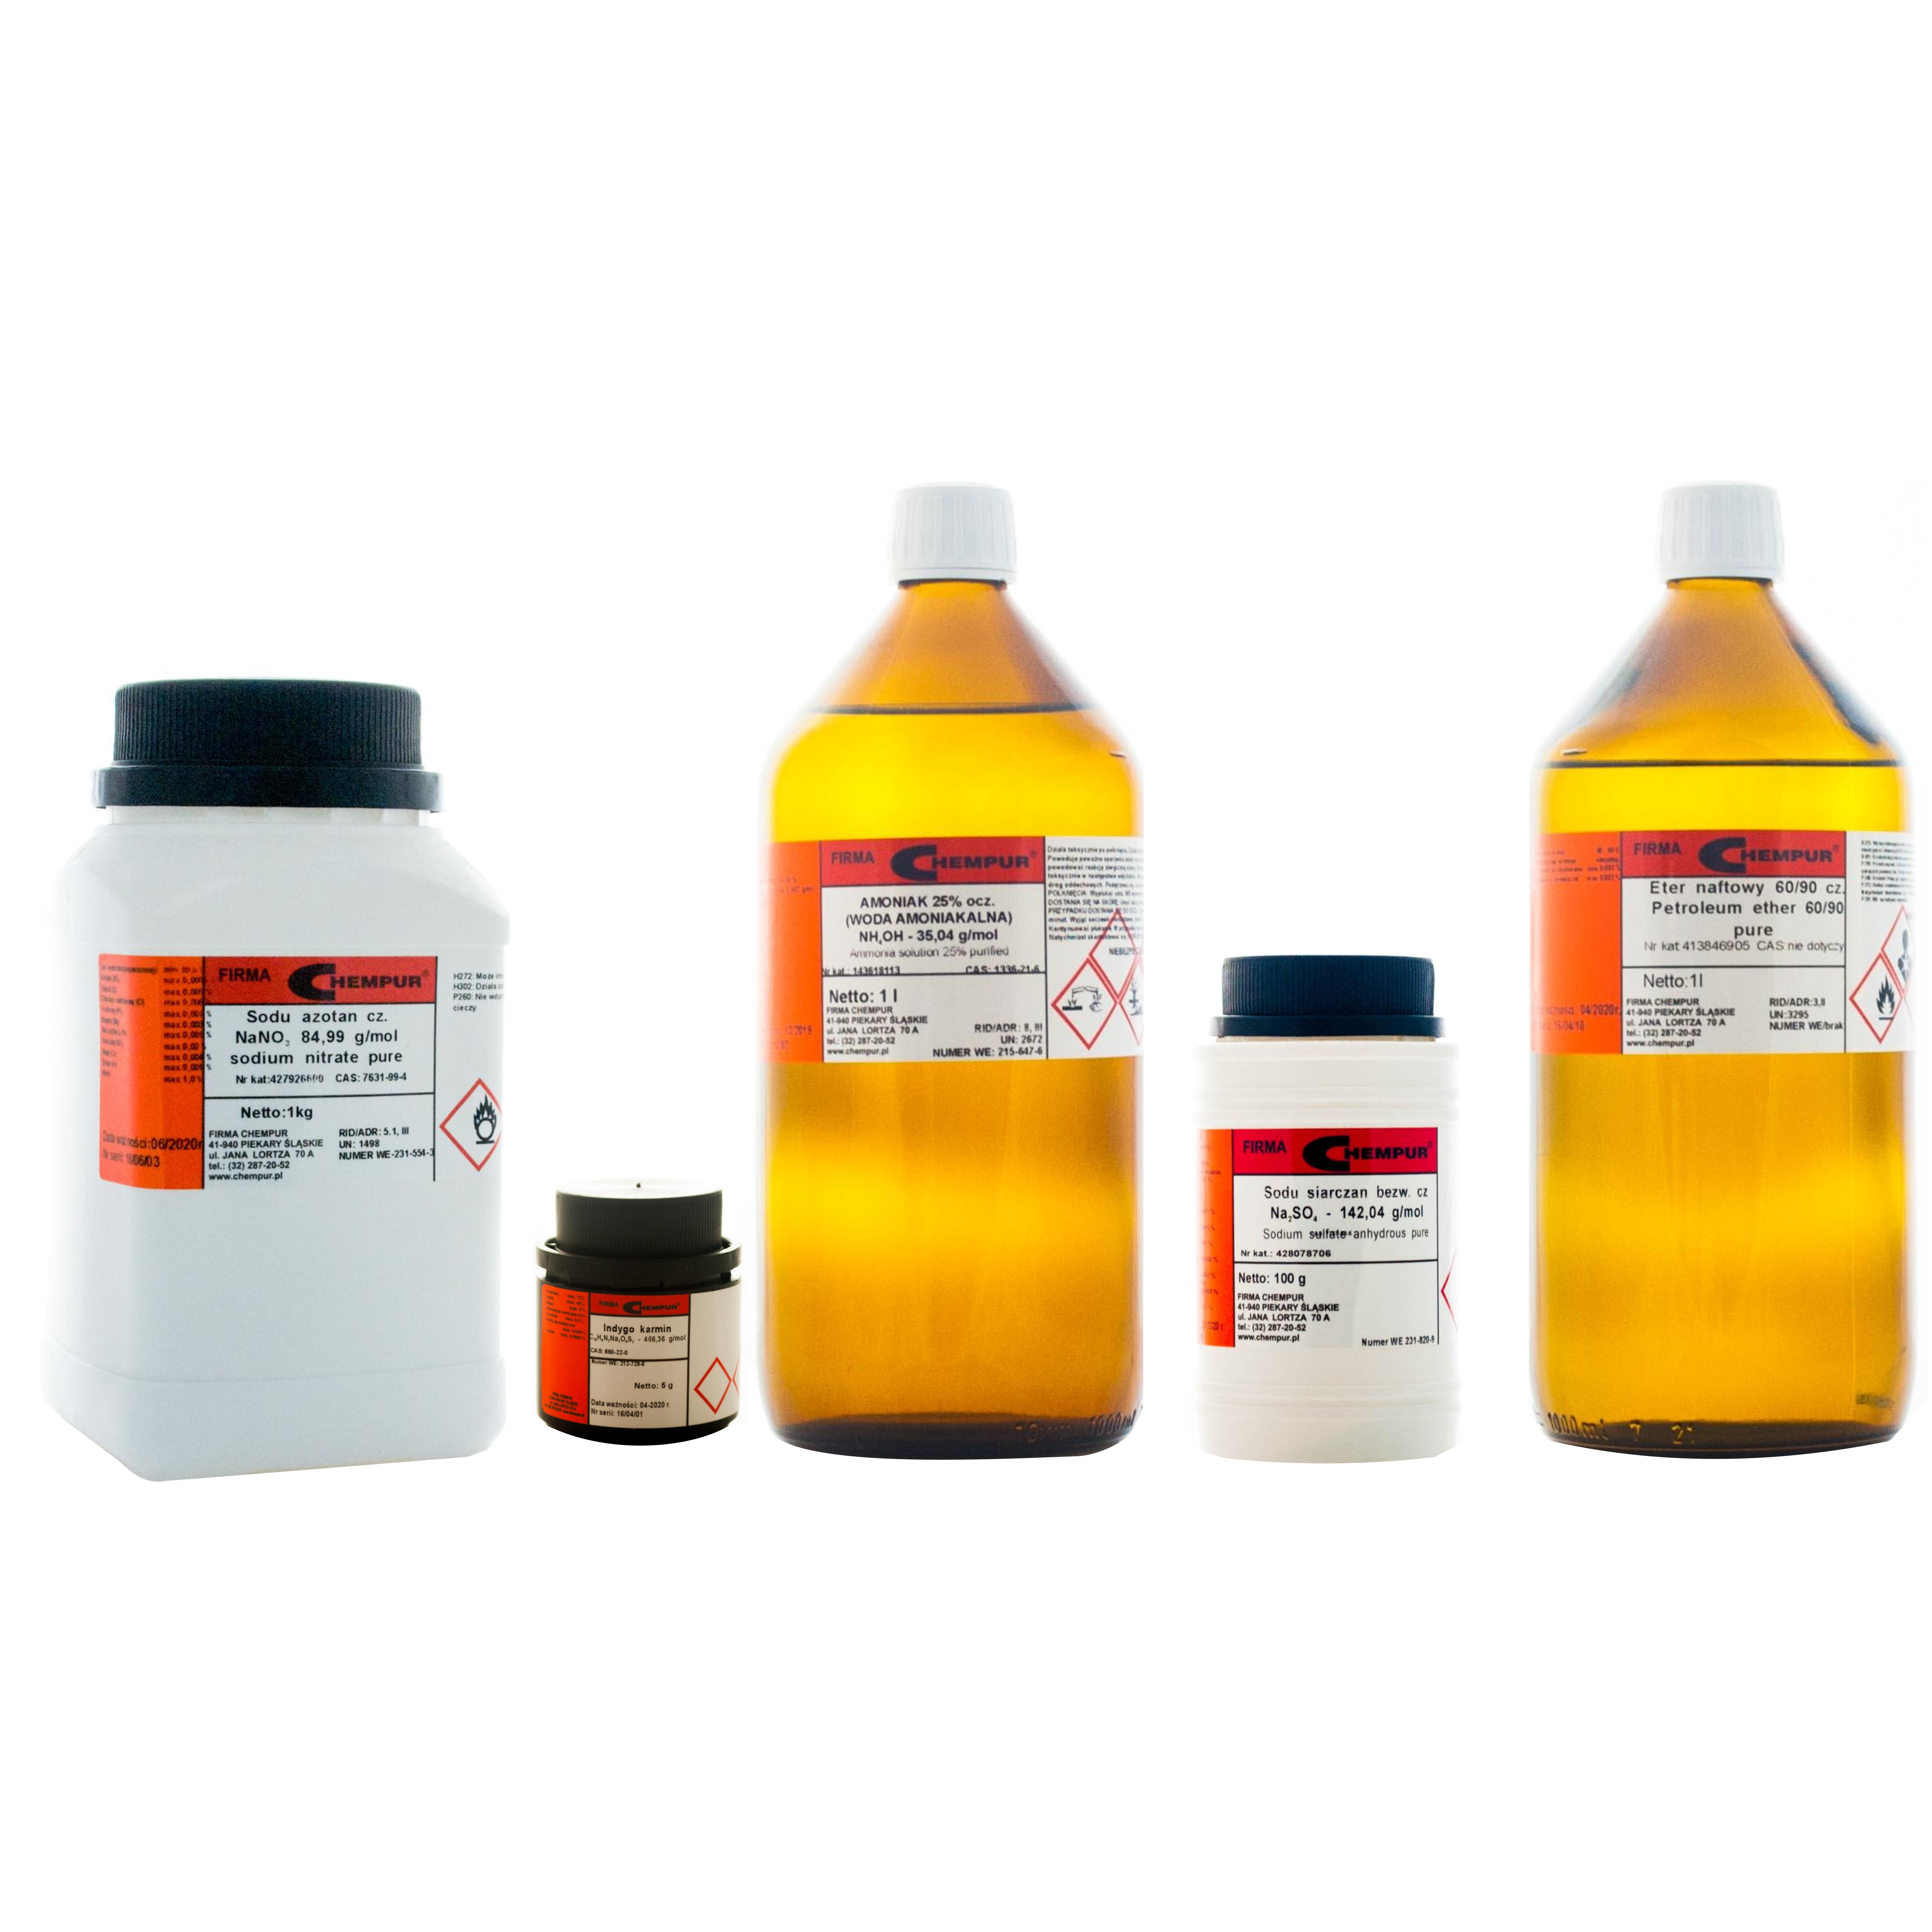 HYDROCHLORIC ACID STANDARD SOLUTION 2 mol/l